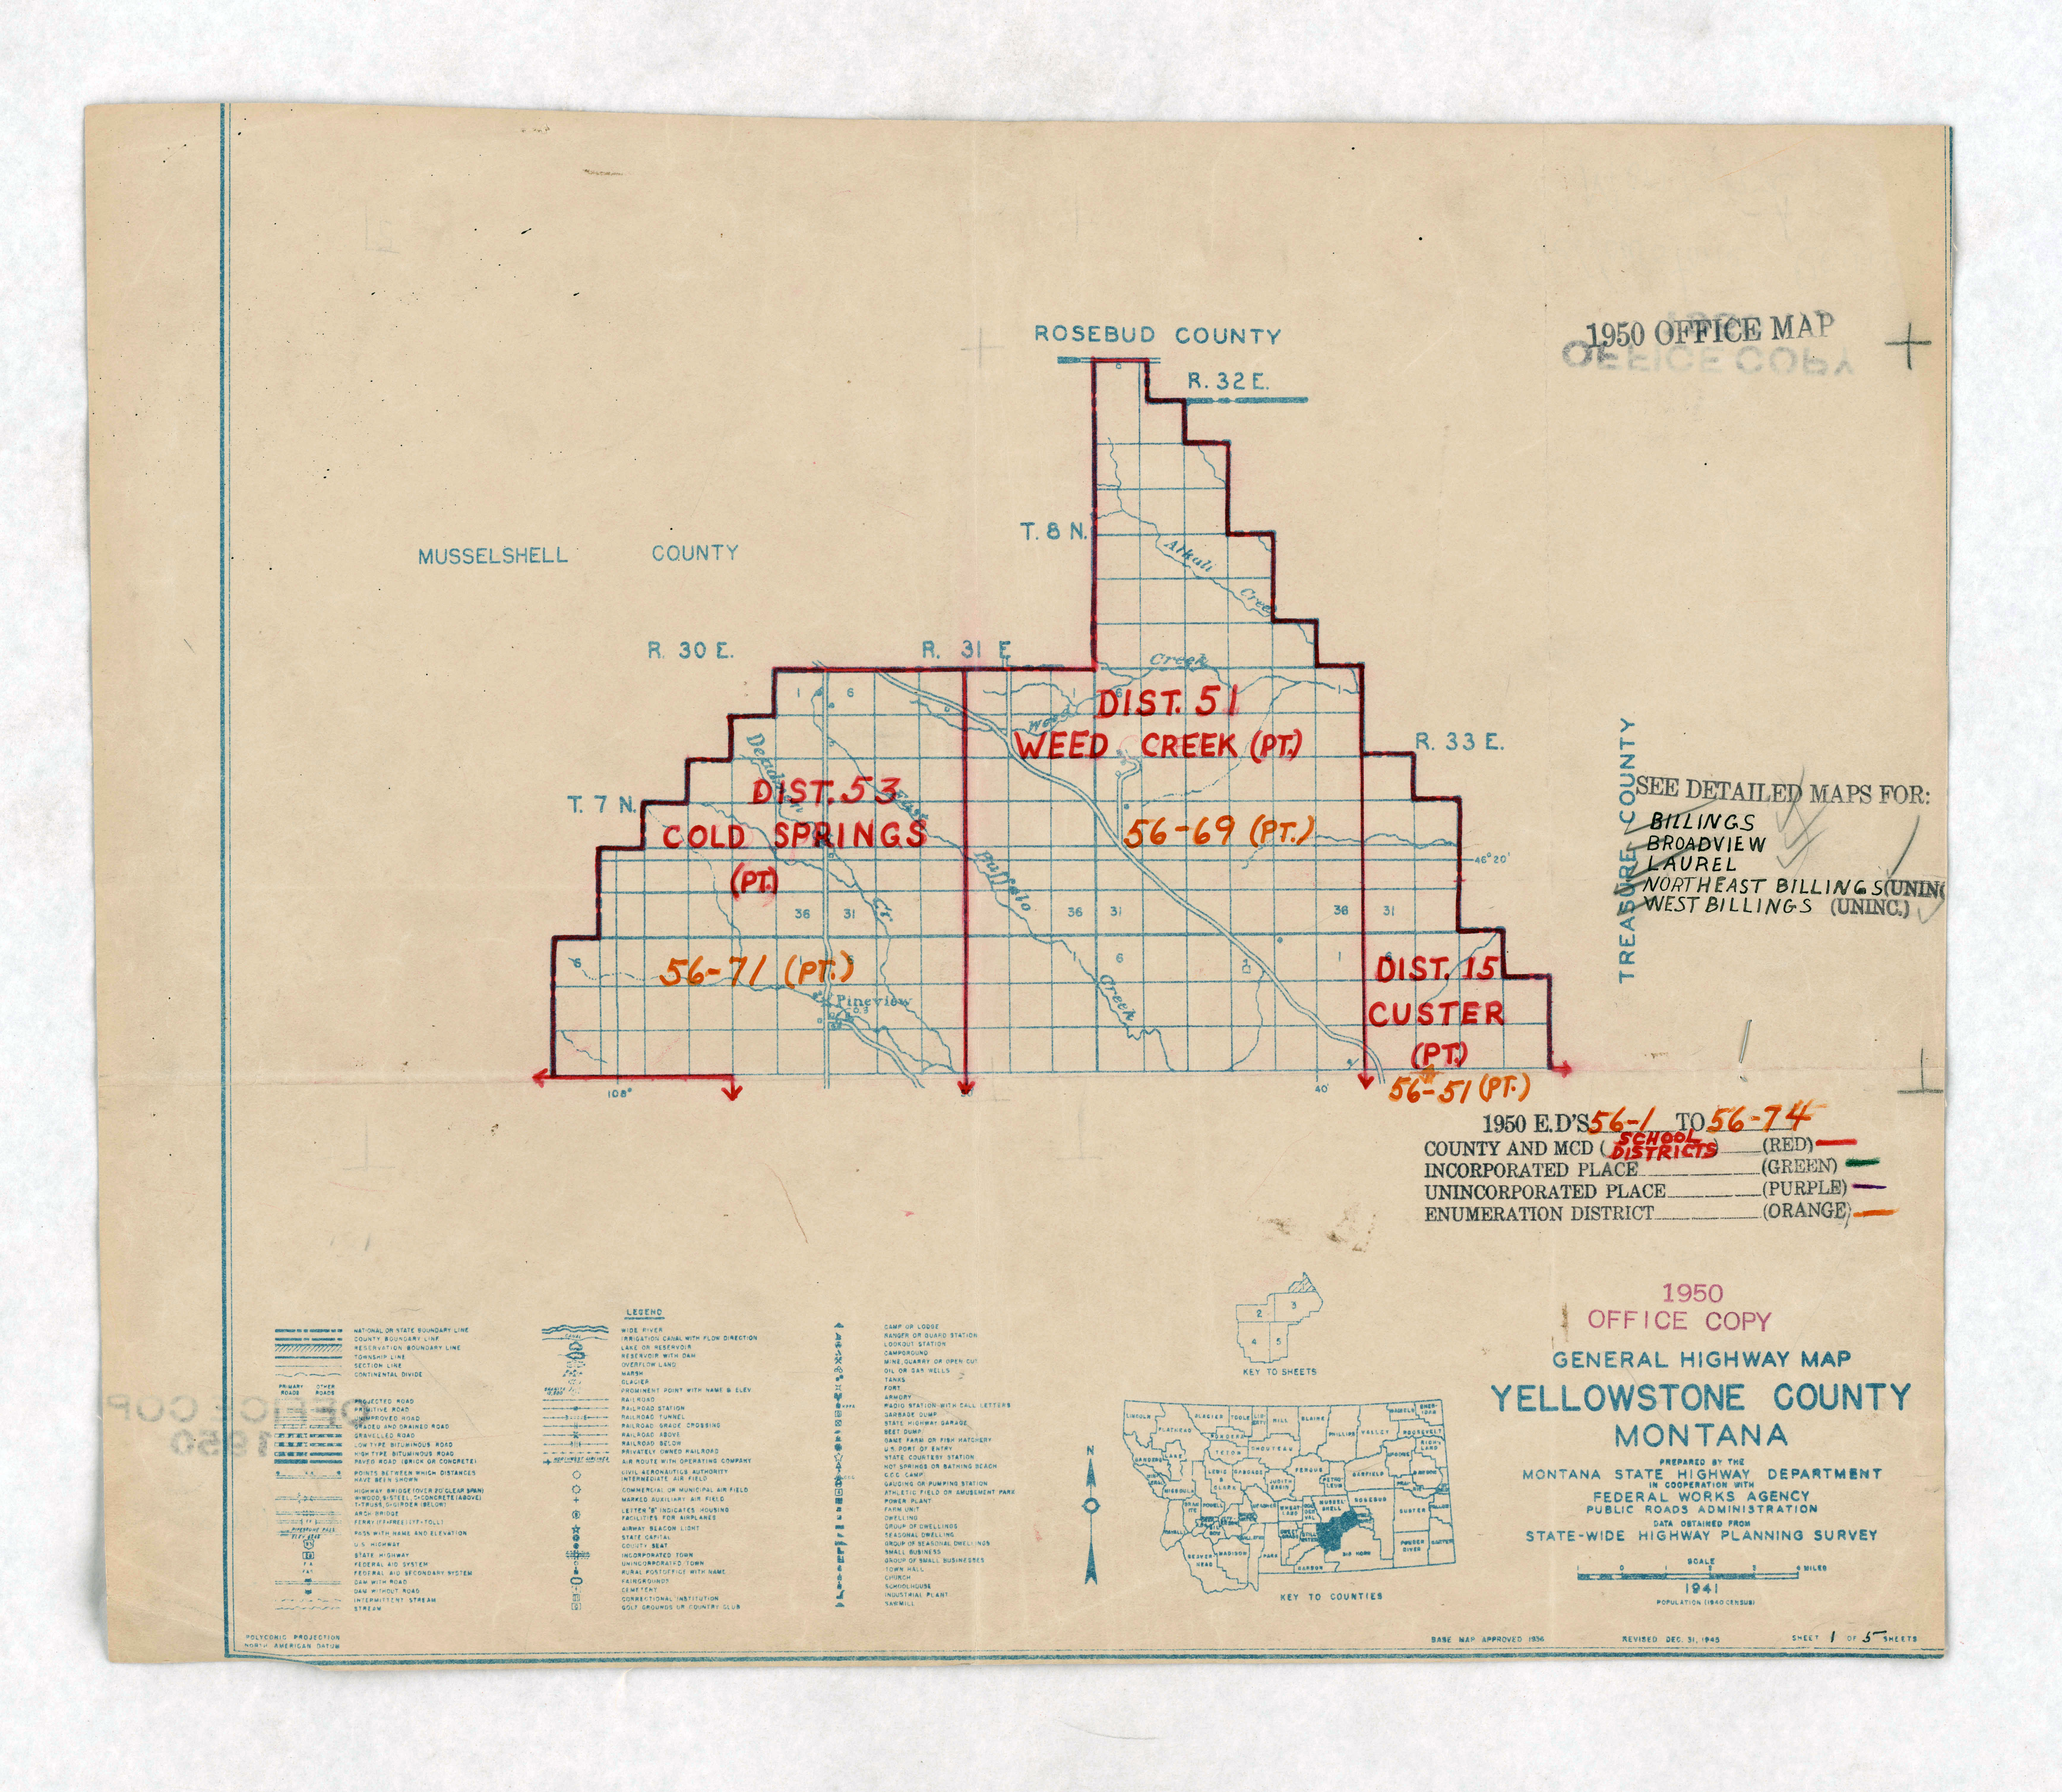 1950 Census Enumeration District Maps - Montana (MT) - Yellowstone County - Yellowstone County - ED 56-1 to 74